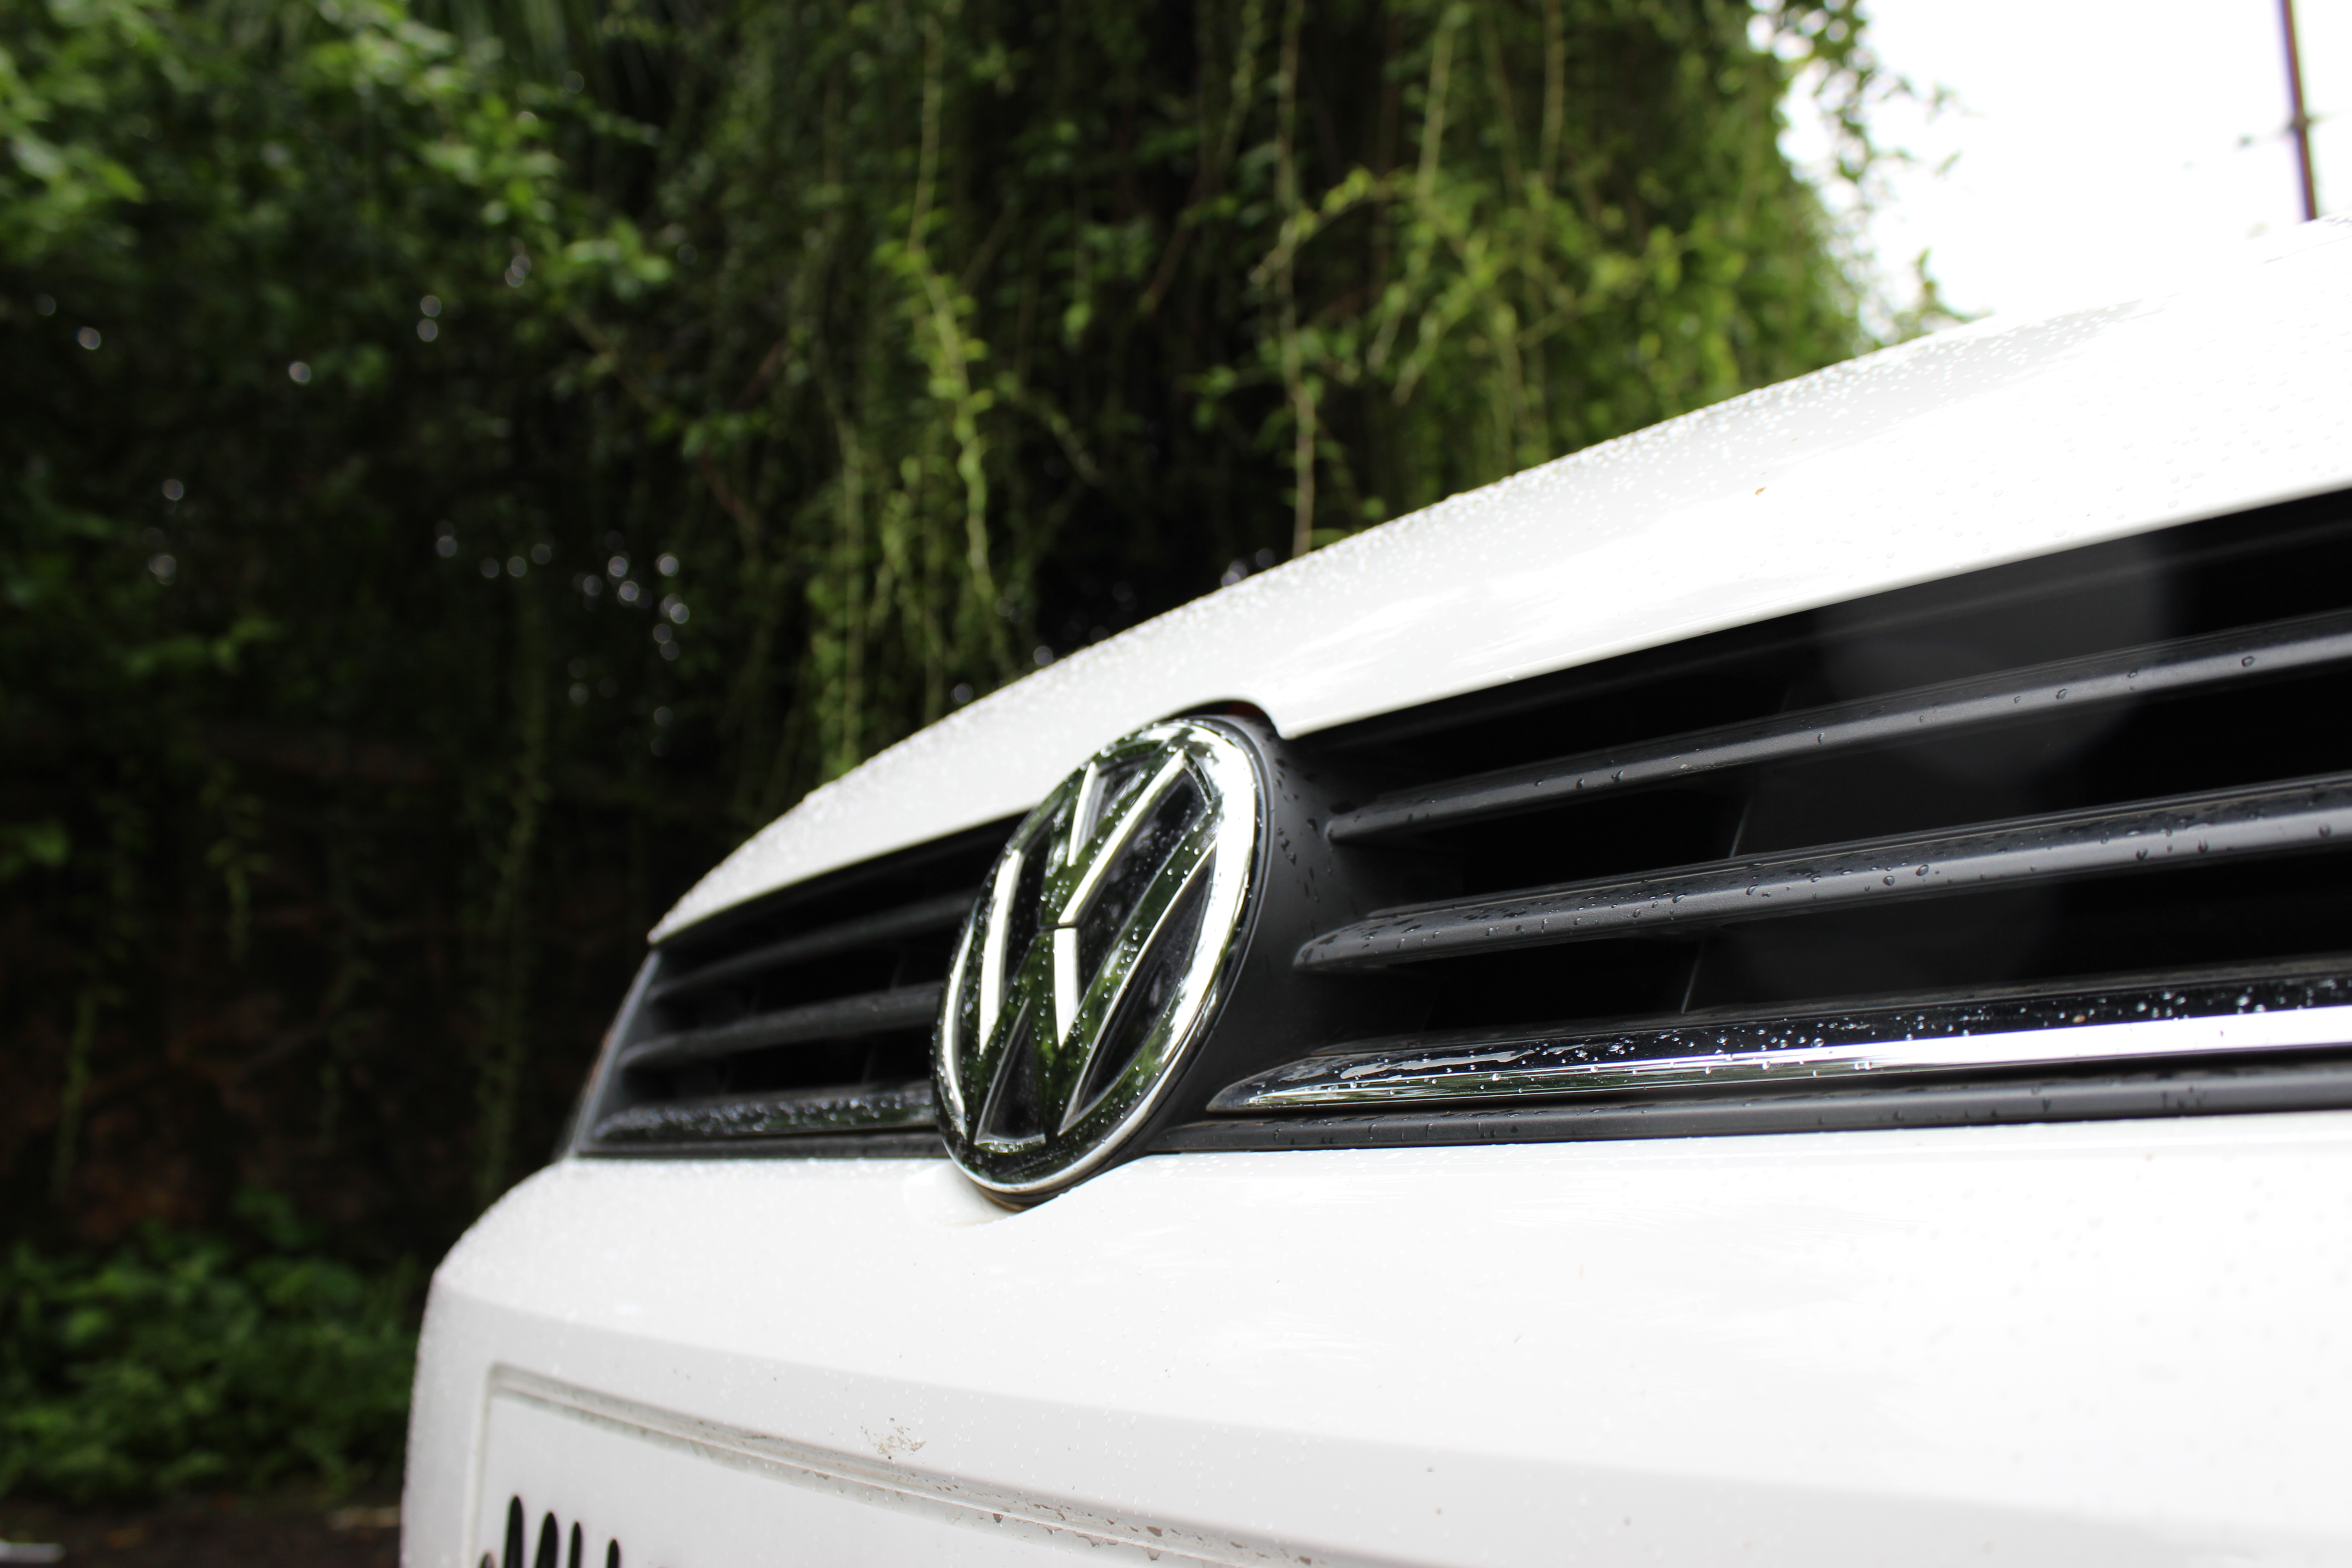 Volkswagen to introduce a compact sedan next year